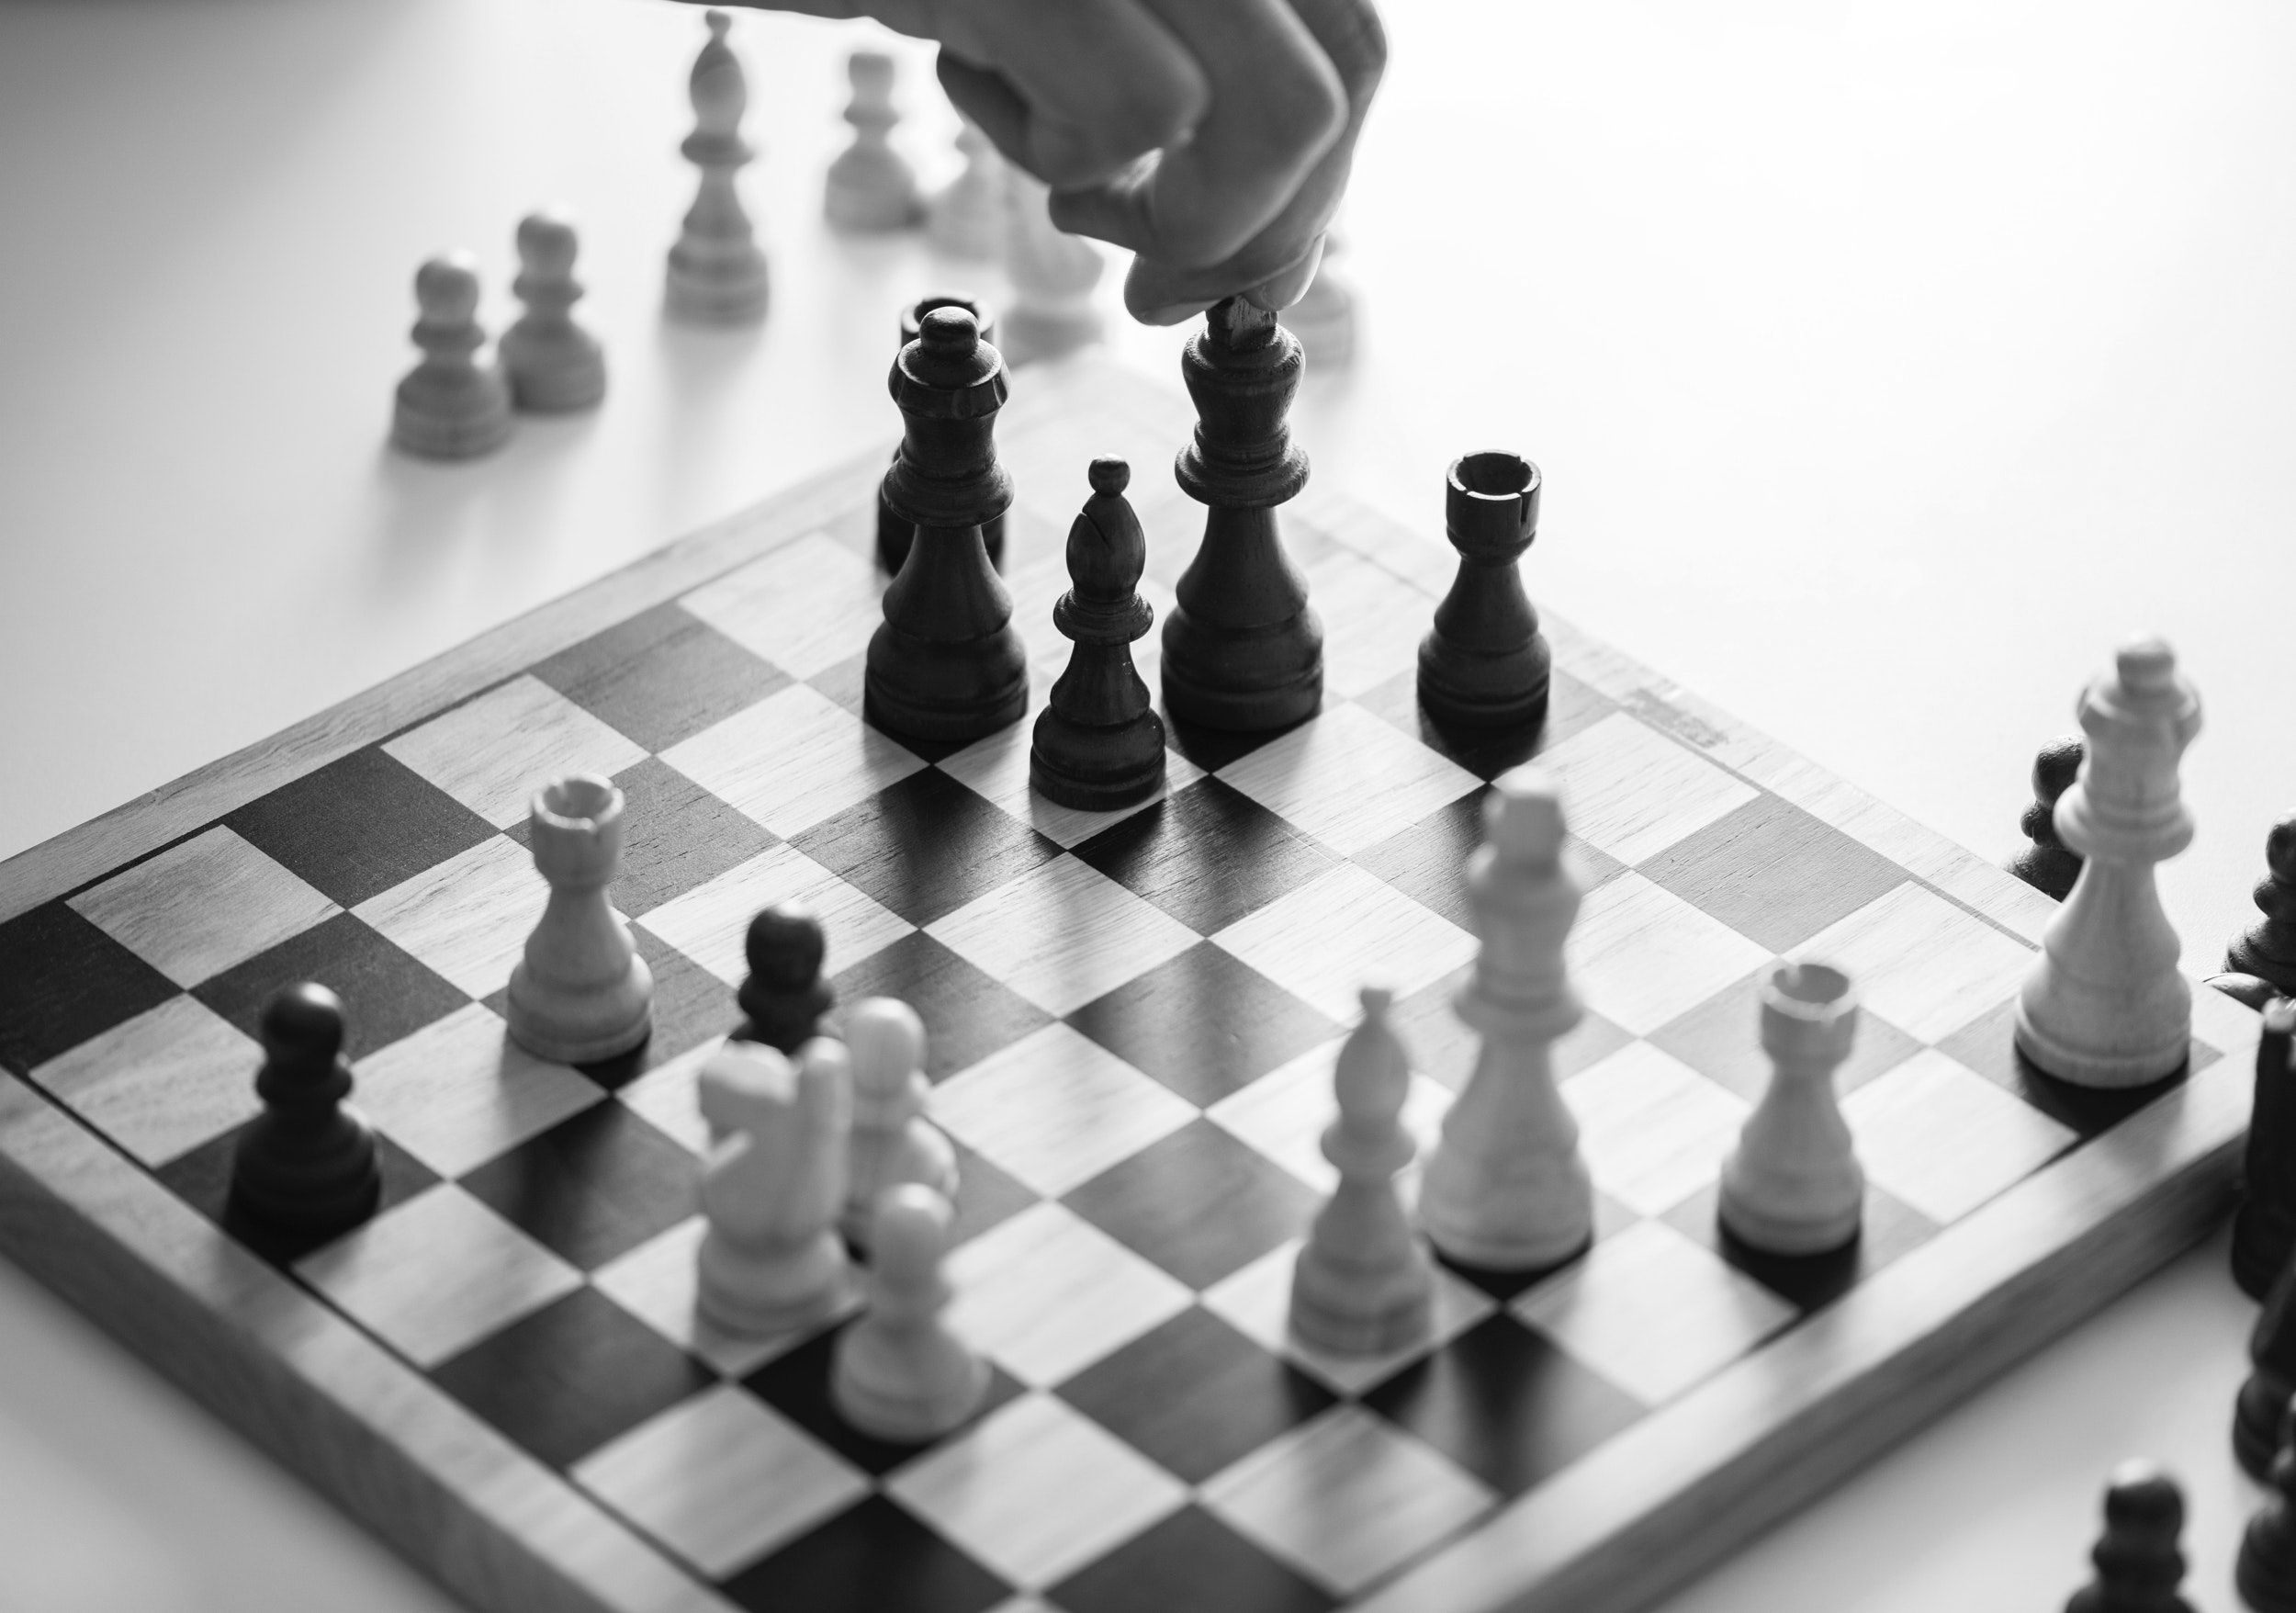 black-and-white-board-game-challenge-997720.jpg